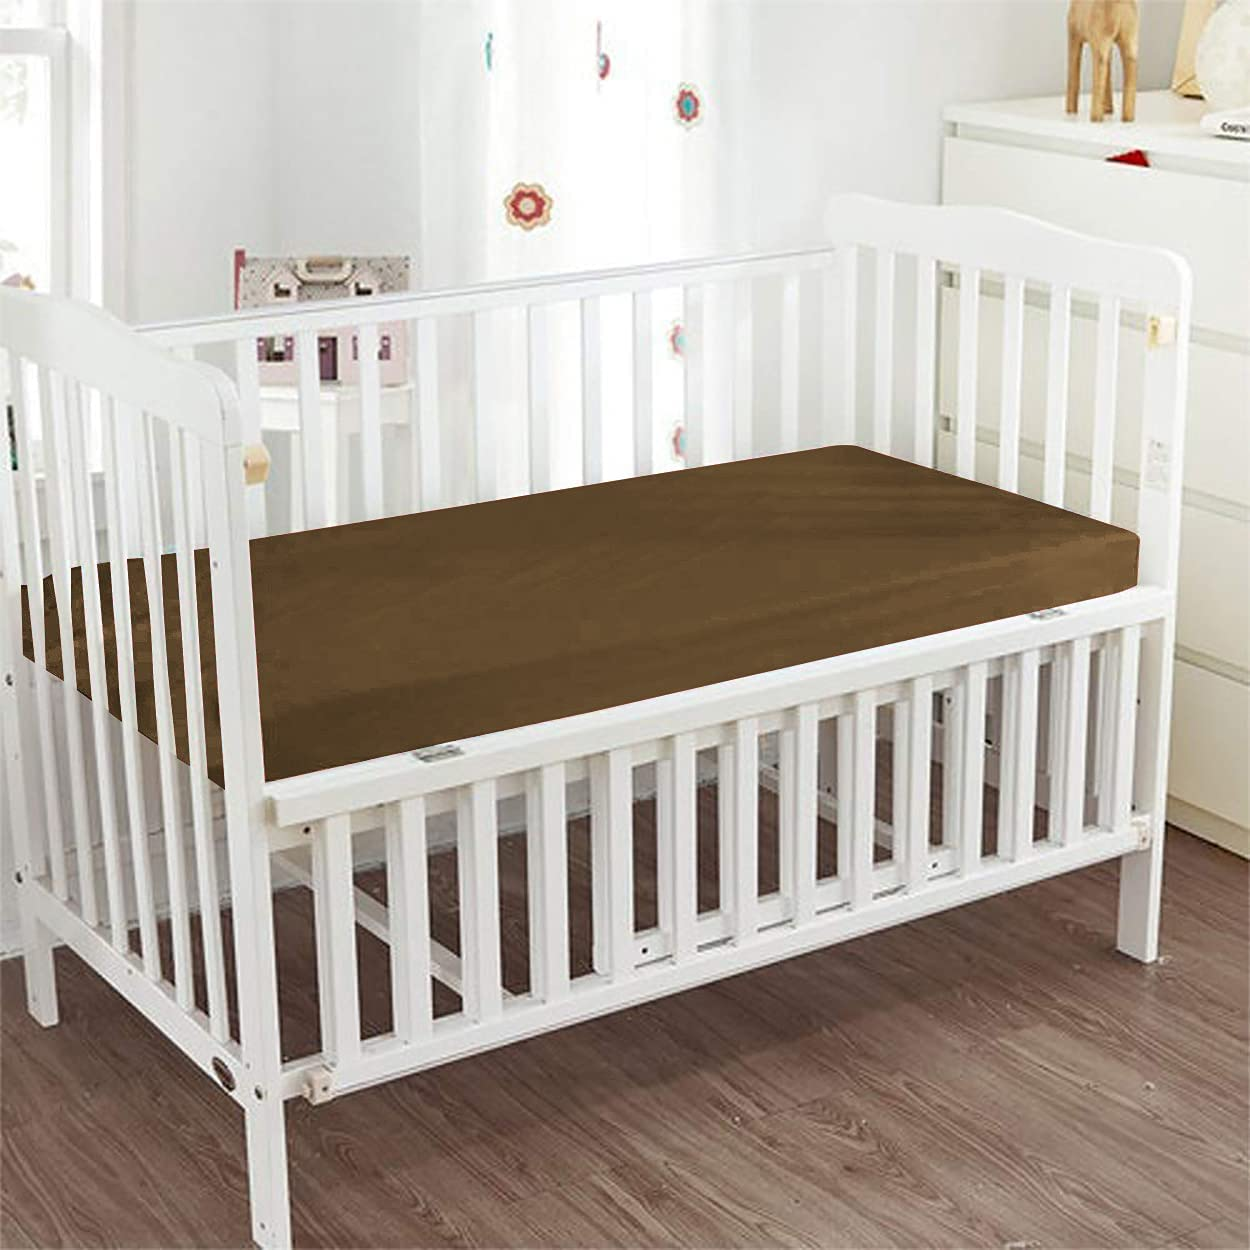 BedFantasy Manufacturer regenerated product - Fitted Crib Sheet 100% Color Egyptian Cotto Popular product Solid